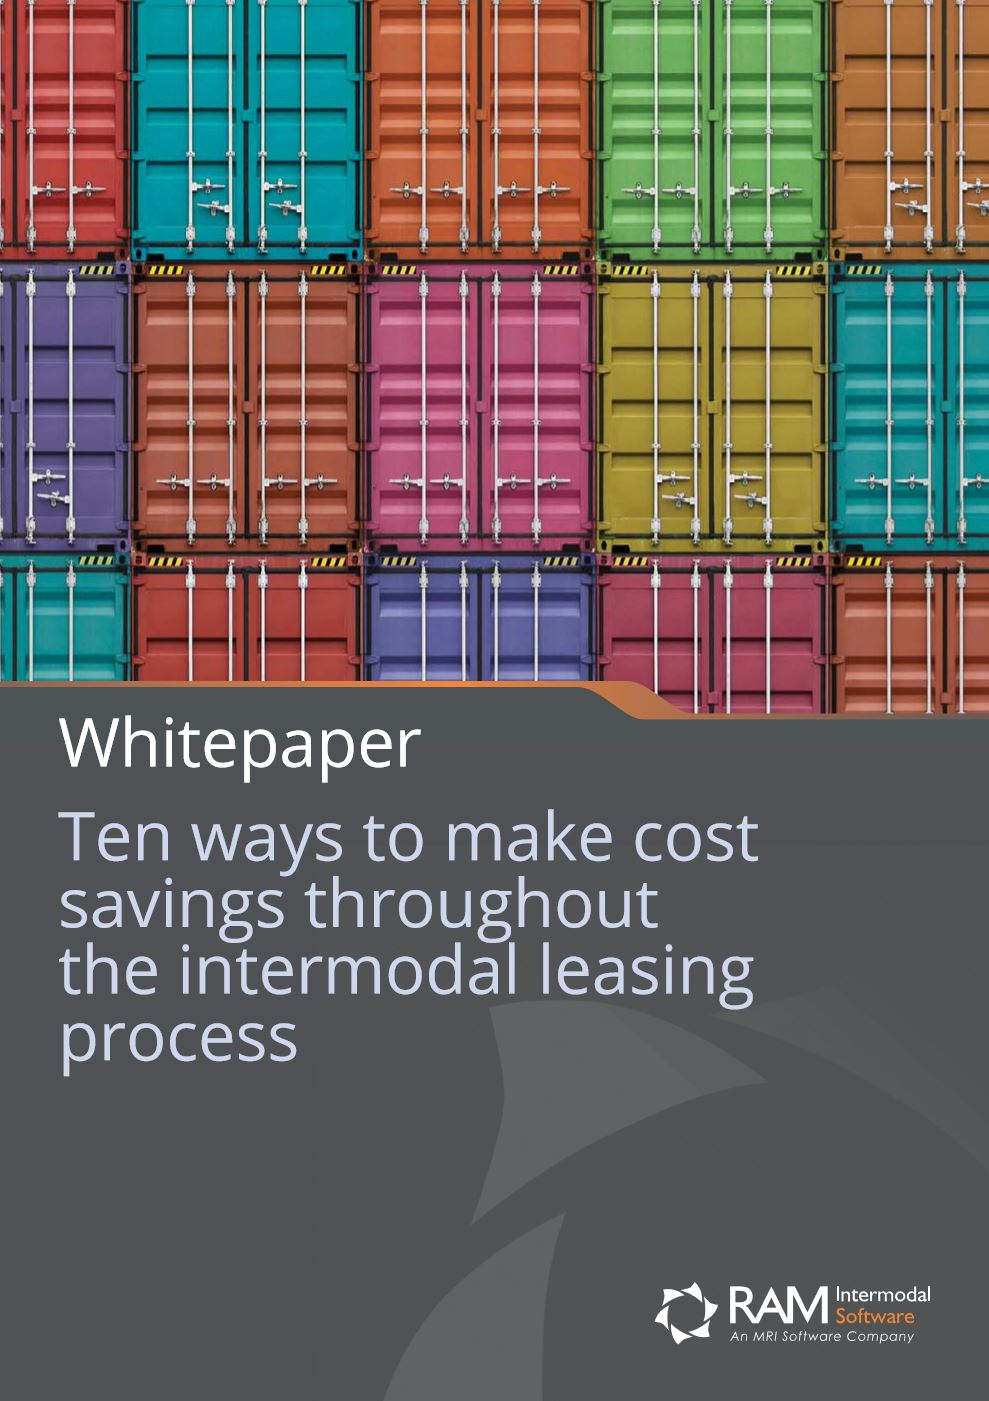 Ten Ways to make Cost Savings Throughout the Intermodal Leasing Process